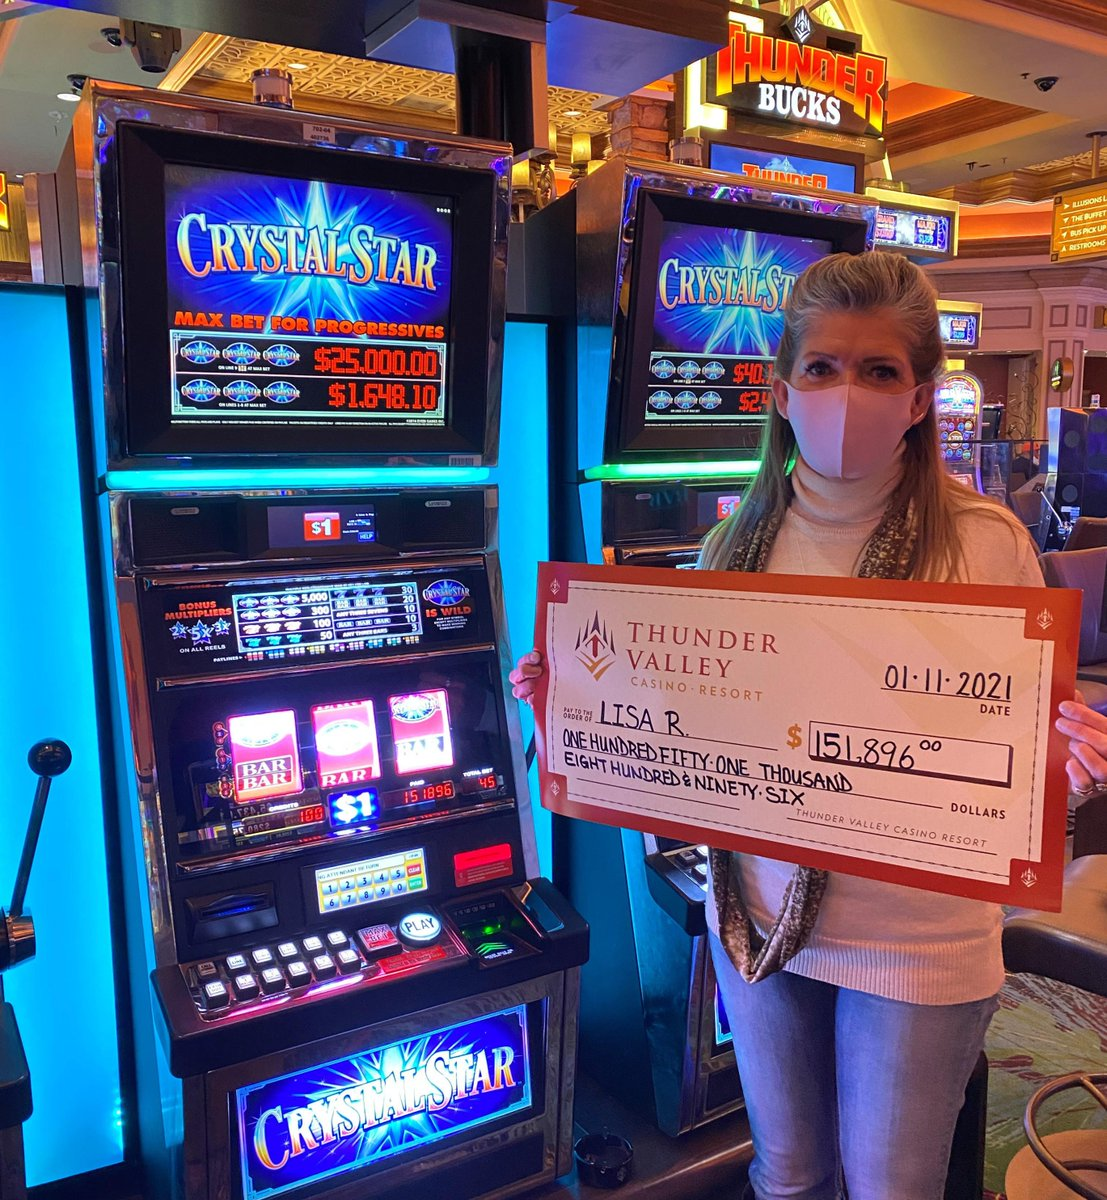 Lisa shot for the stars earlier this morning when she took home a $151,896 jackpot on Crystal Star! ⭐ 🎰💰 🎉